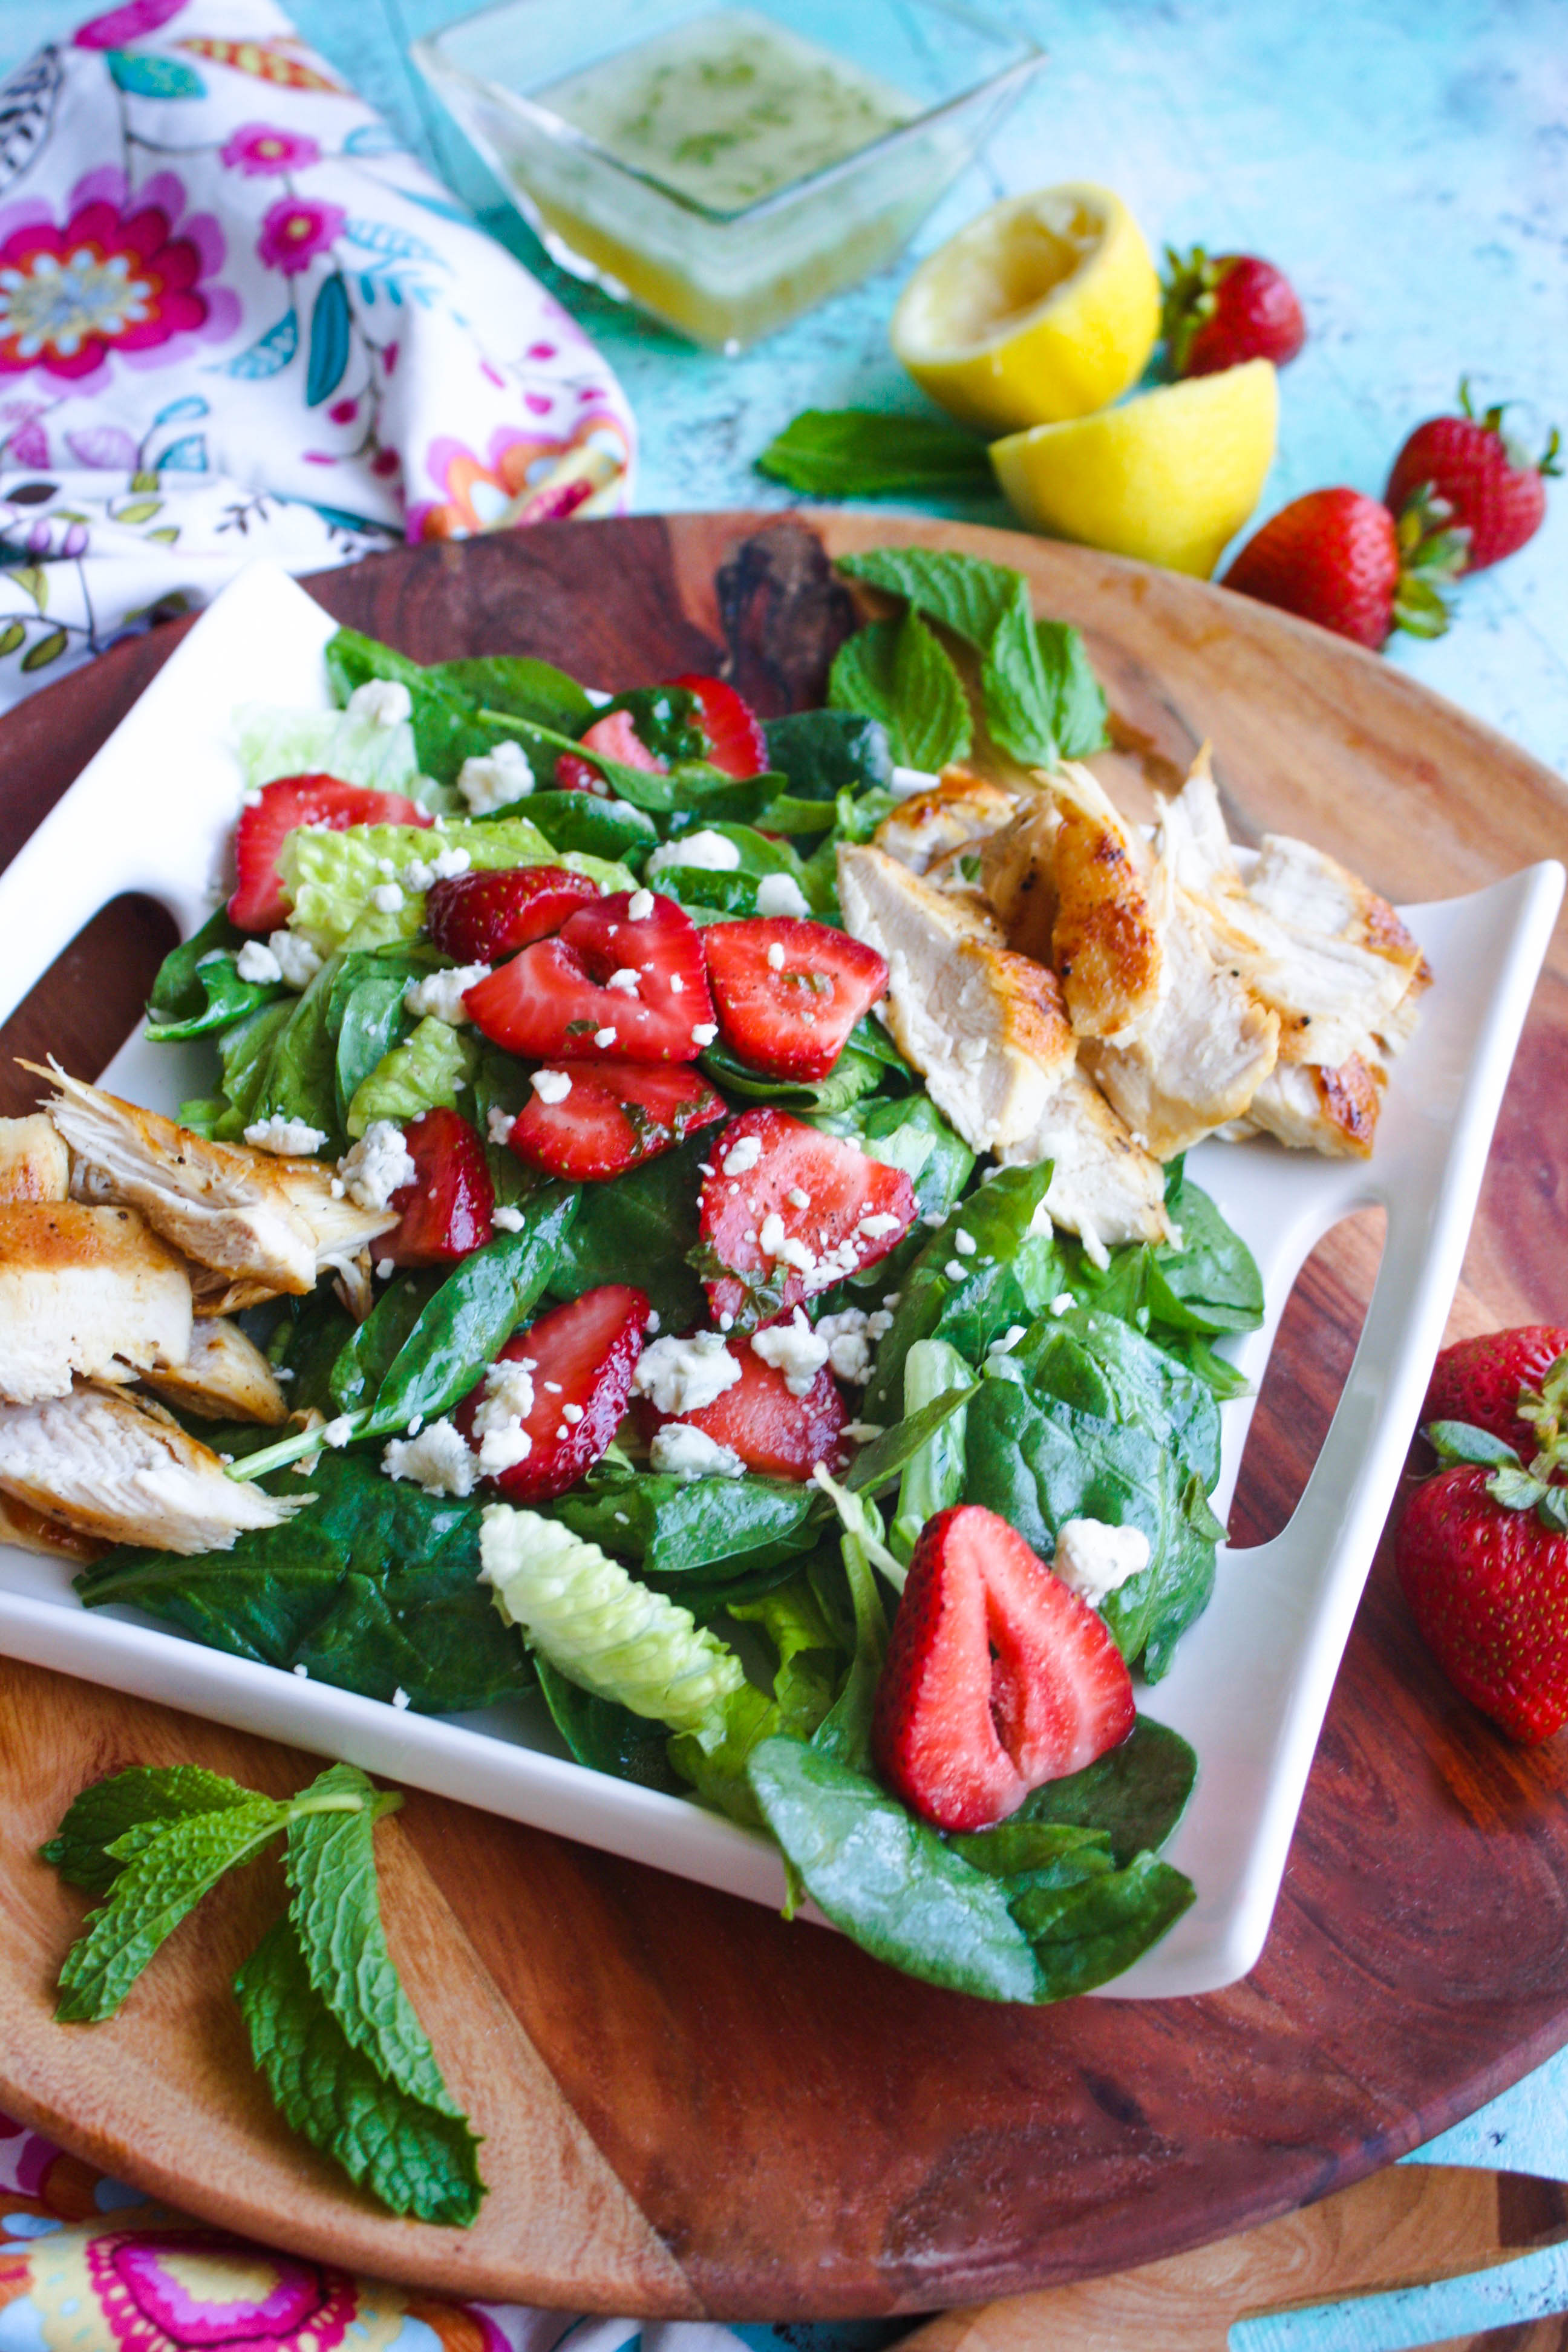 Chicken Salad with Strawberries and Honey-Lemon Mint Dressing is a fabulous, no-fuss meal. You'll love the touch of sweetness from the strawberries and the lemon.